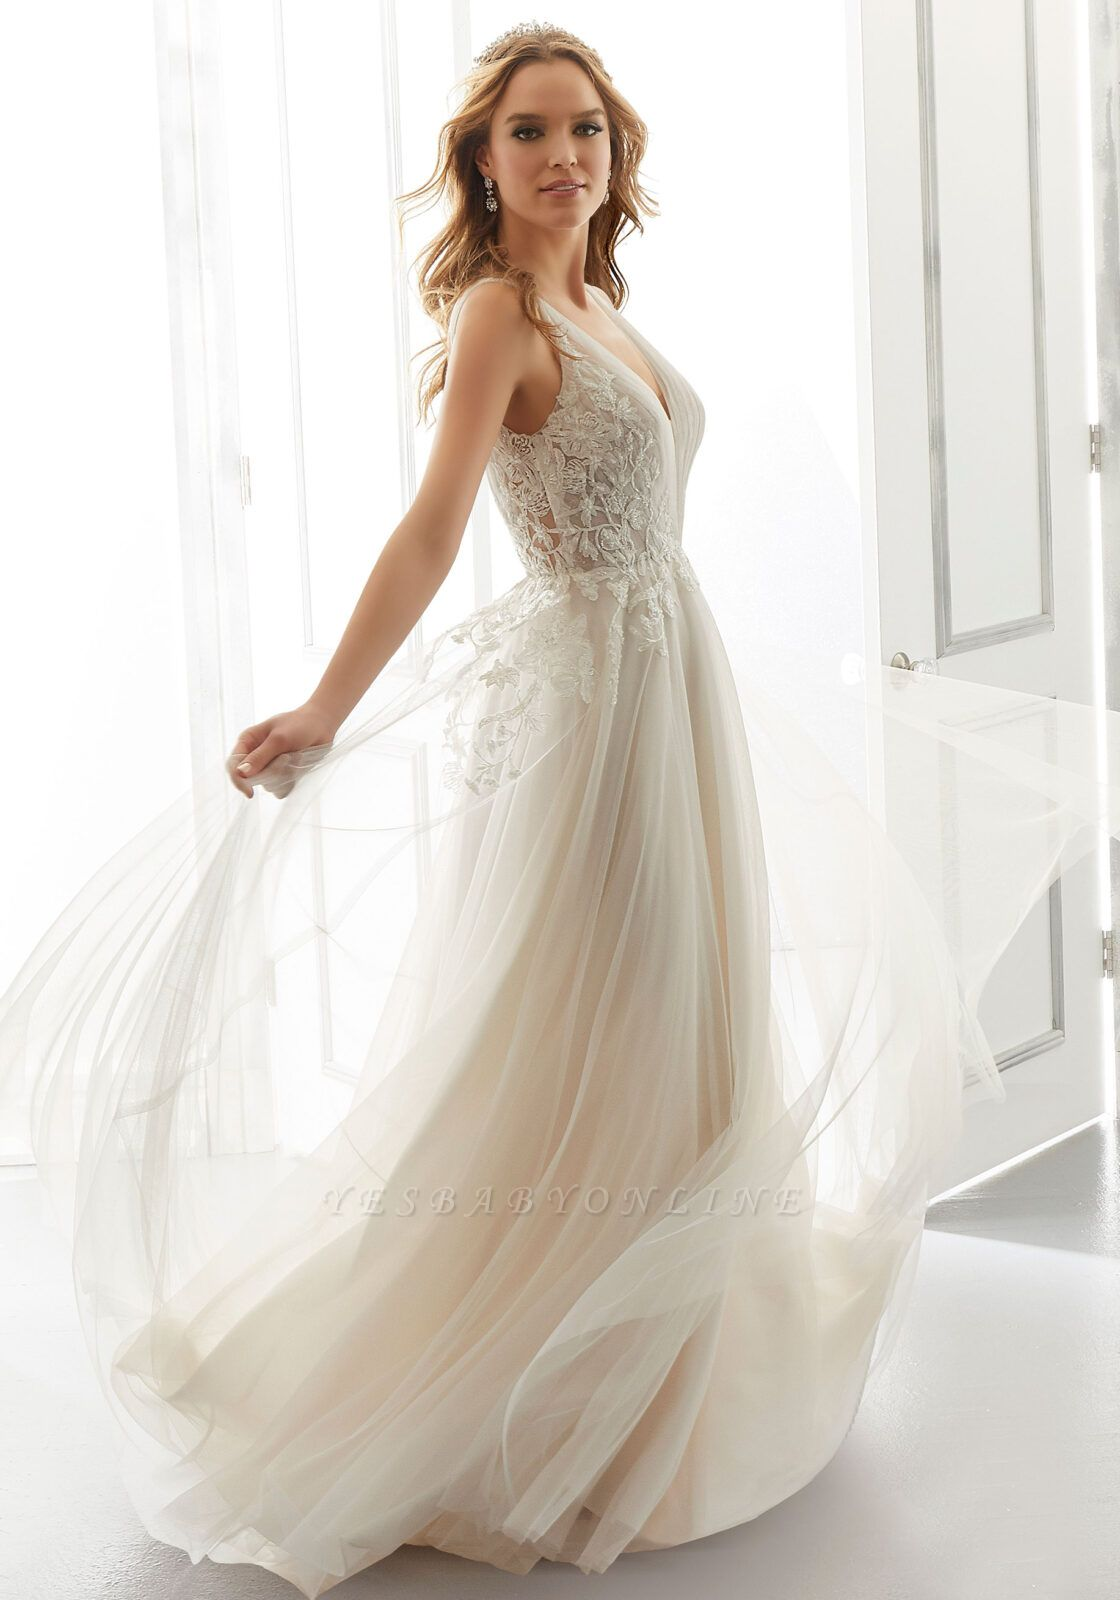 Elegant Sleeveless Tulle Satin A-Line Wedding Dresses With Lace Appliques